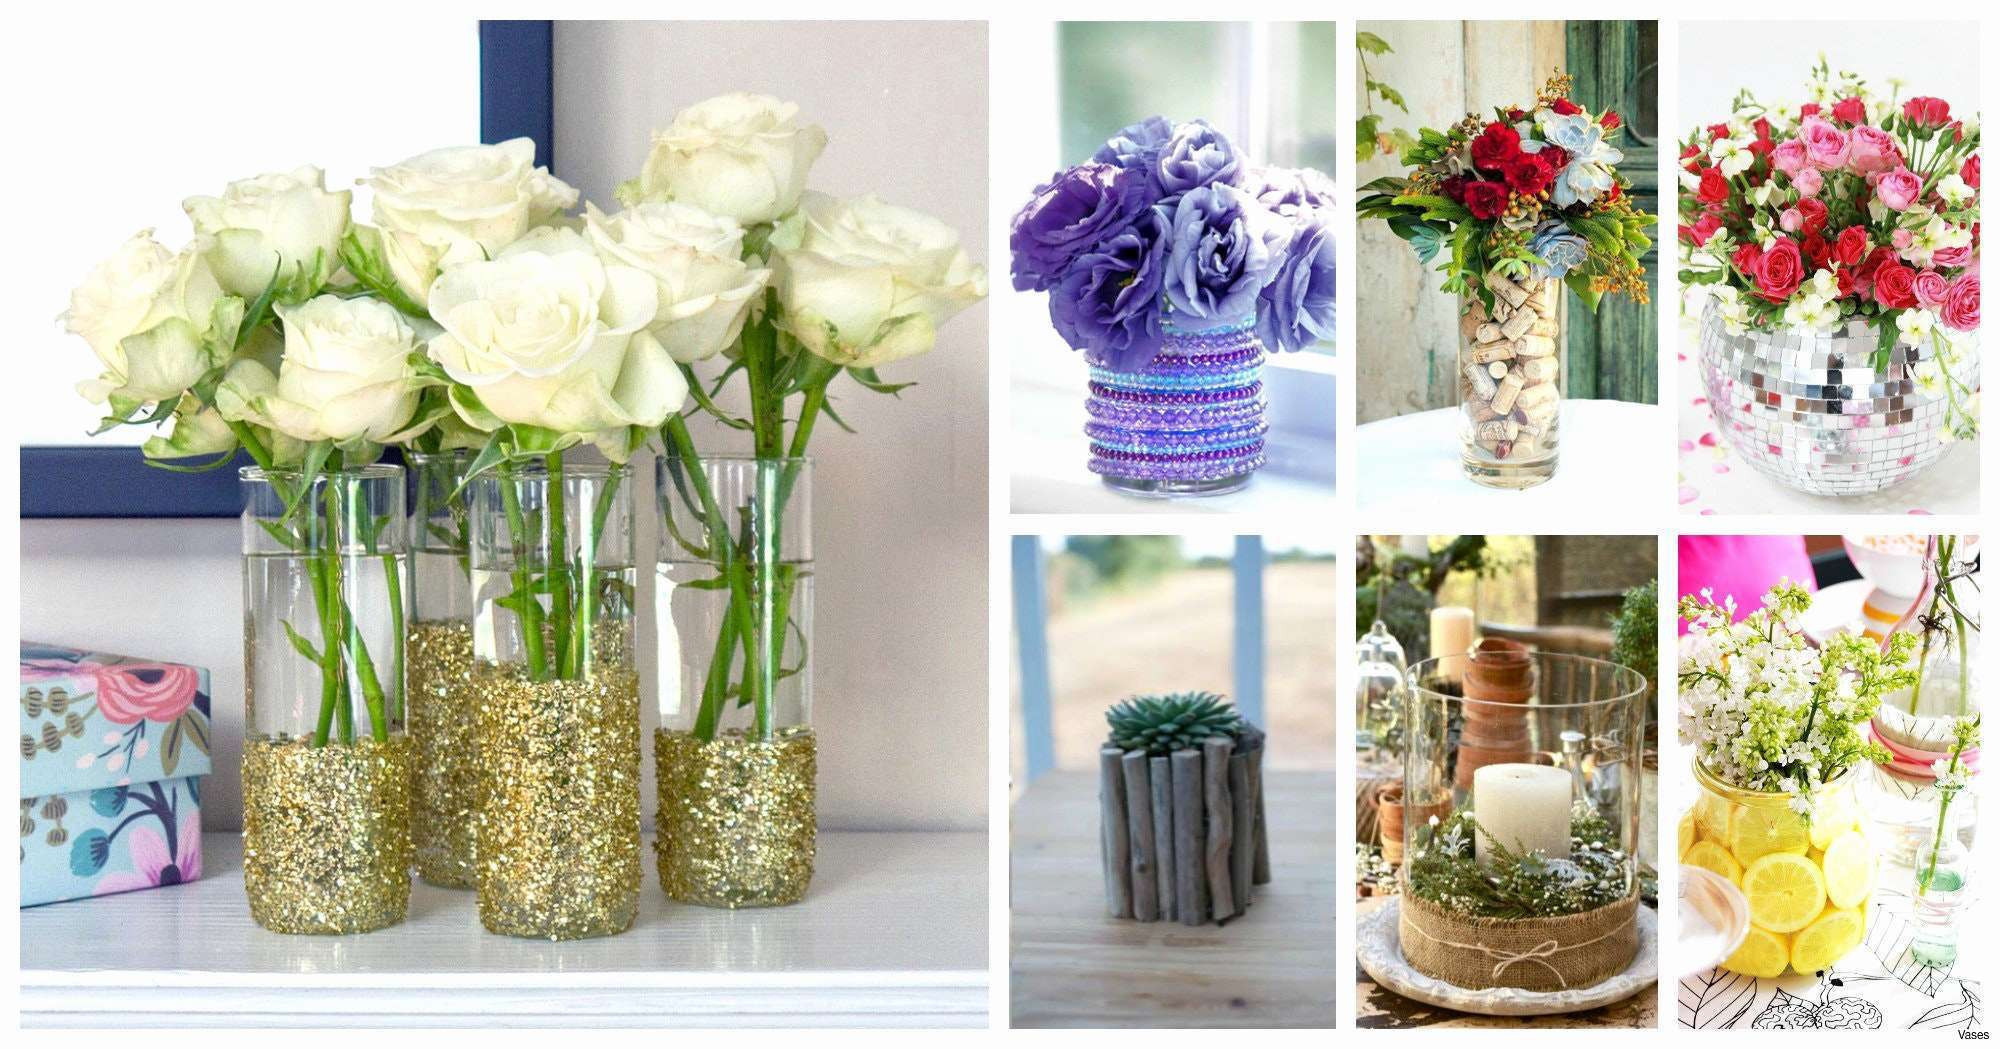 24 Best Small Square Vases for Wedding